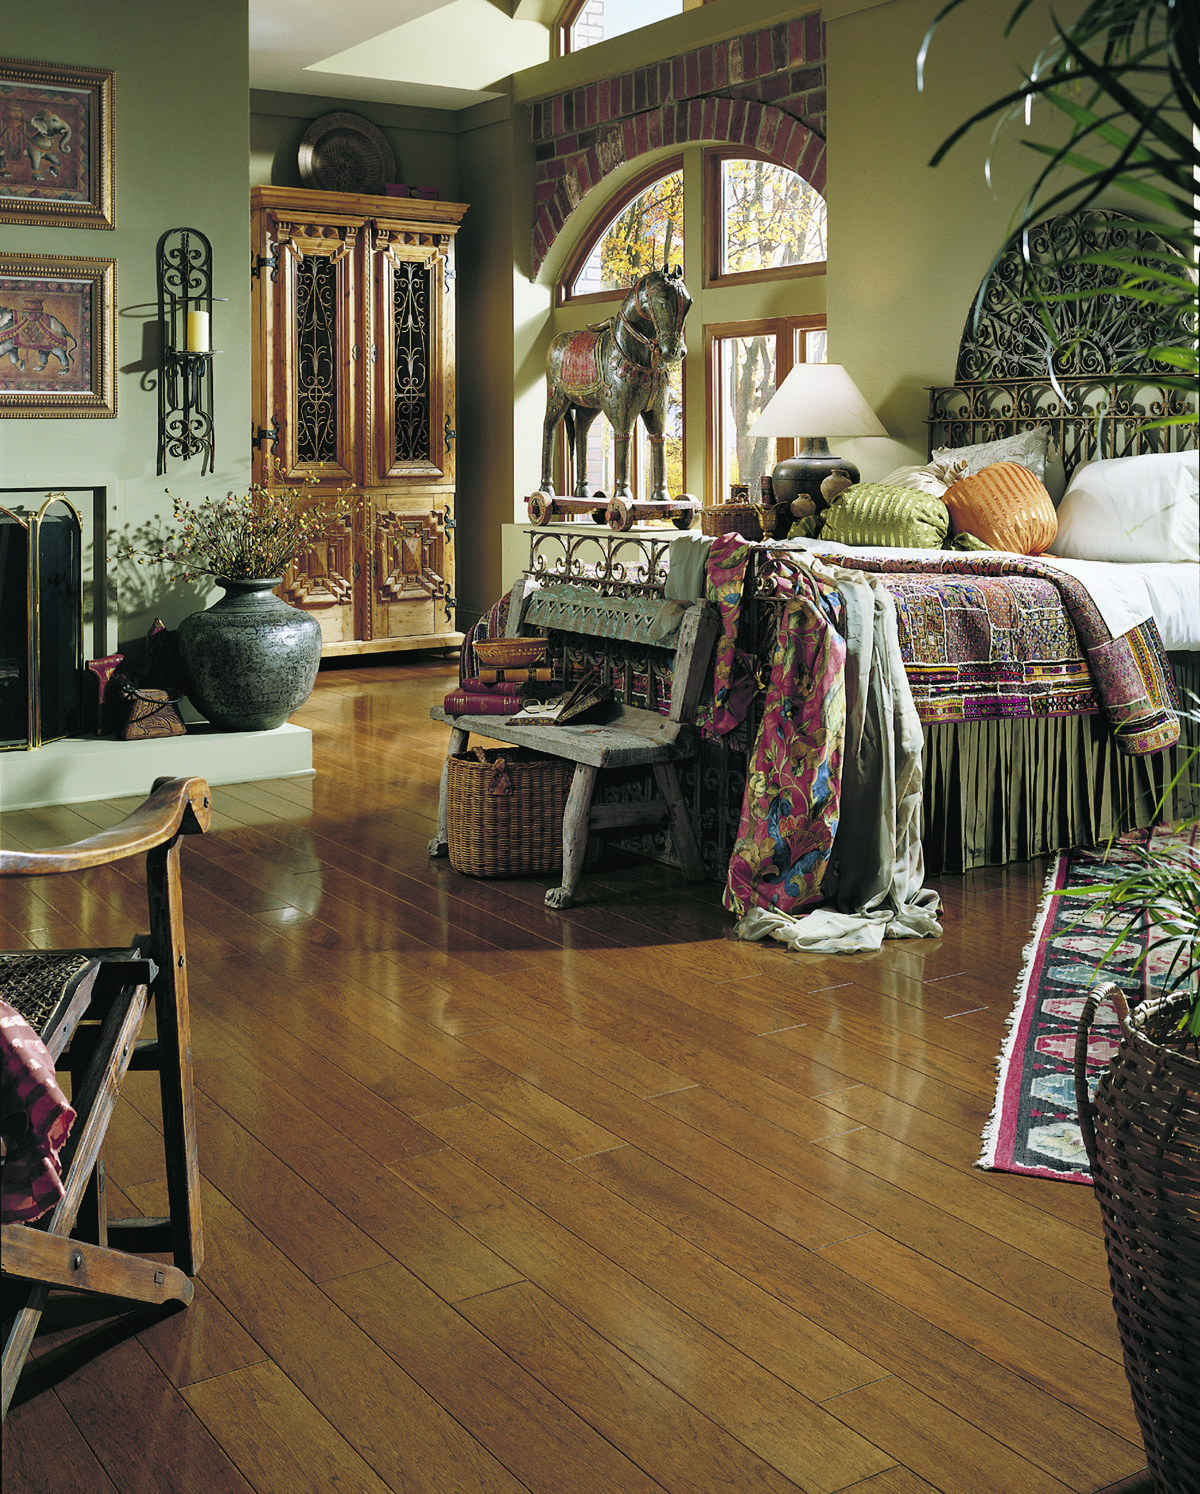 Mannington Hardwood Cherry Stain Hickory House flooring